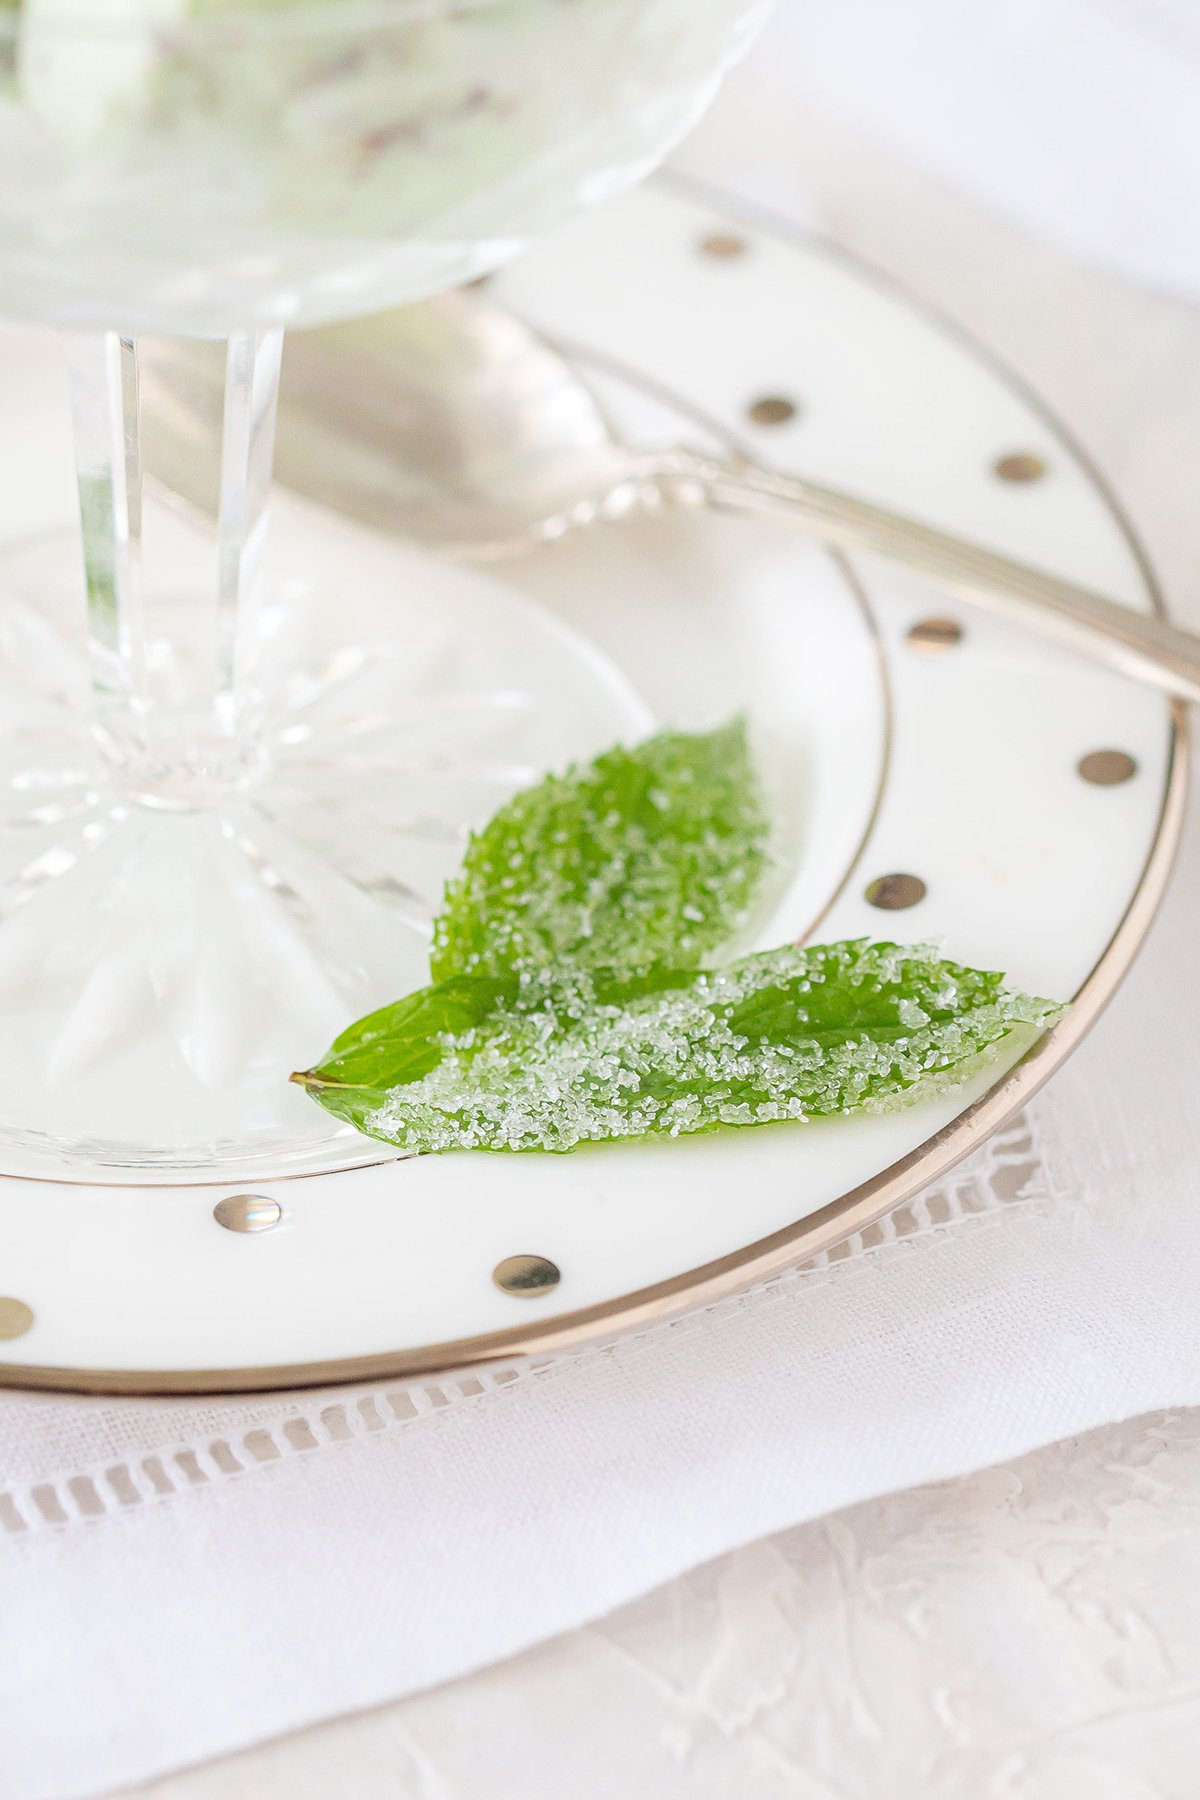 Candied Mint Leaves